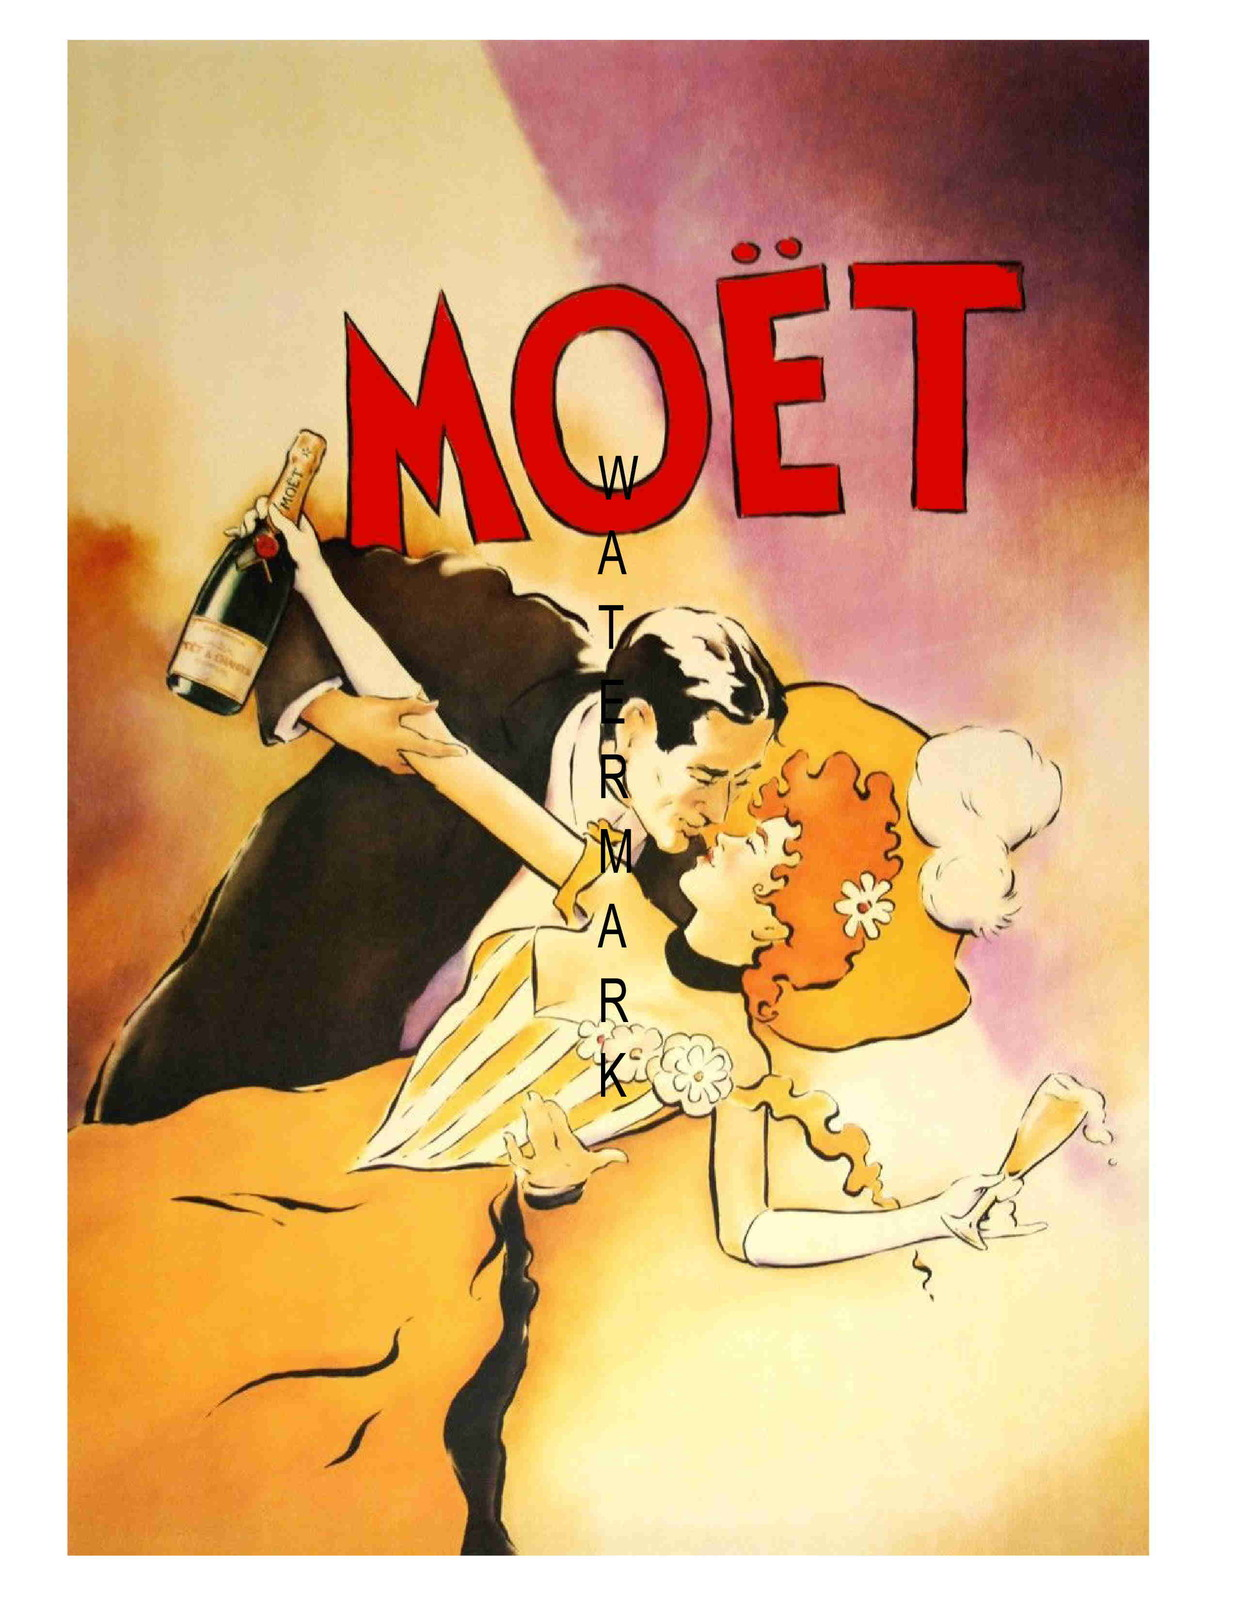 Moet Vintage Champagne 13 x 10 inch Advertising Giclee CANVAS Print